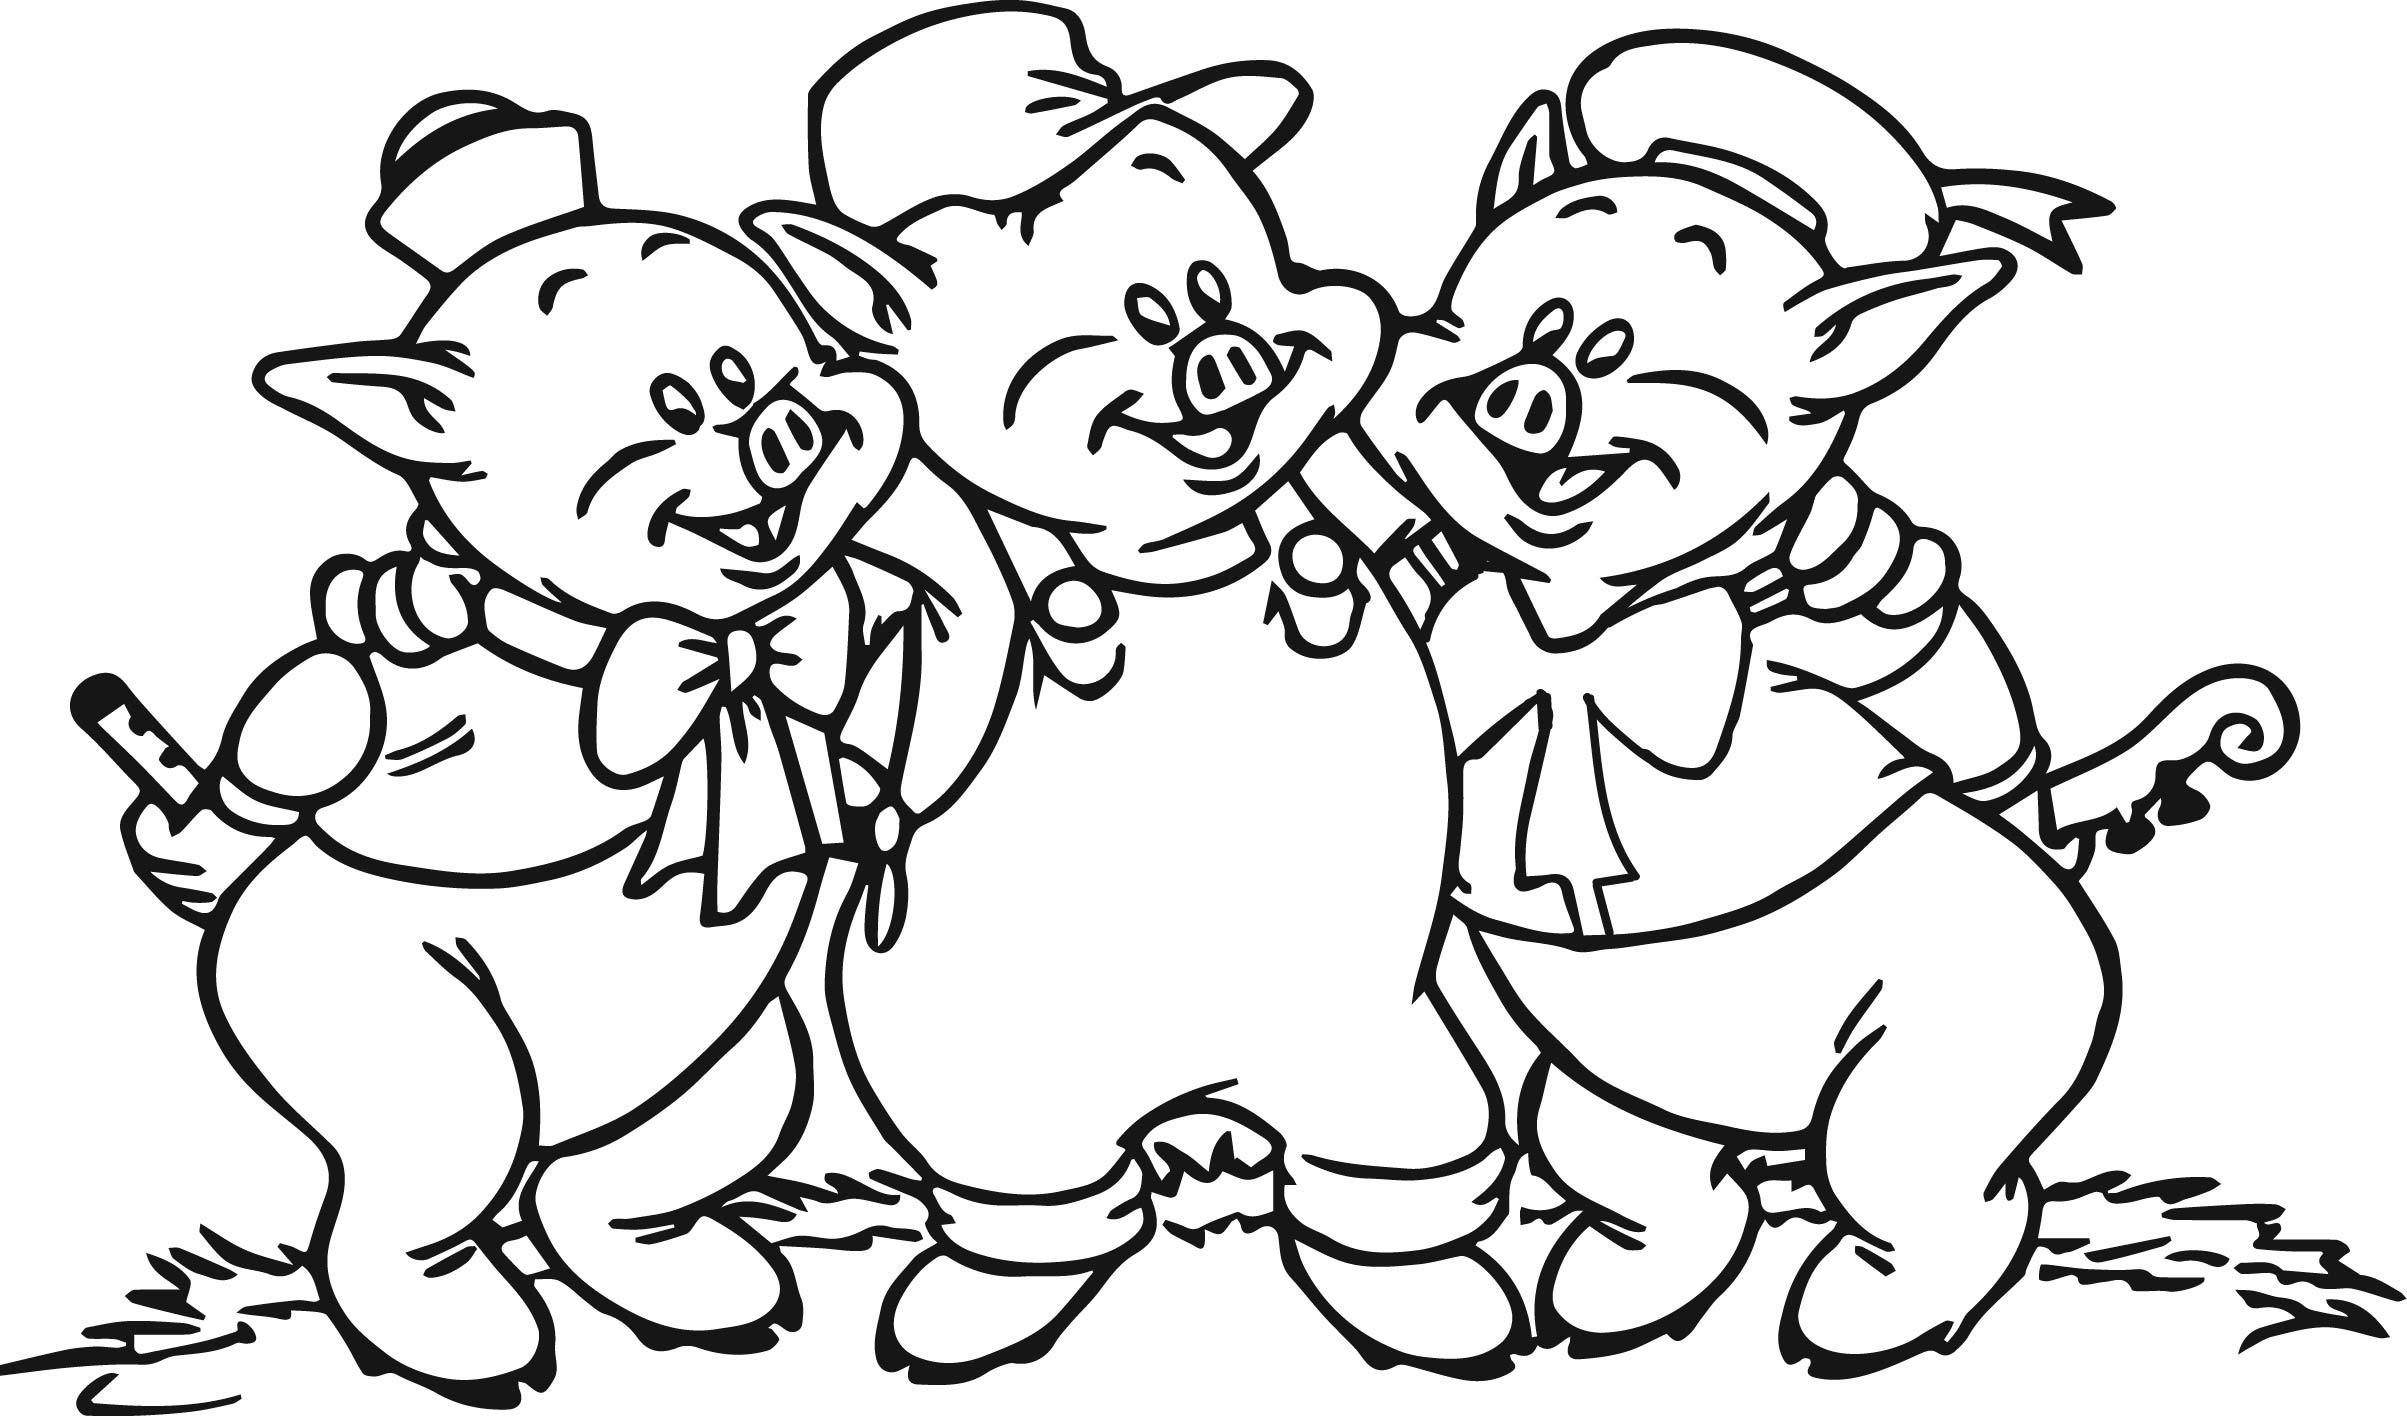 Cute Pig Coloring Pages Download   Free Coloring Sheets